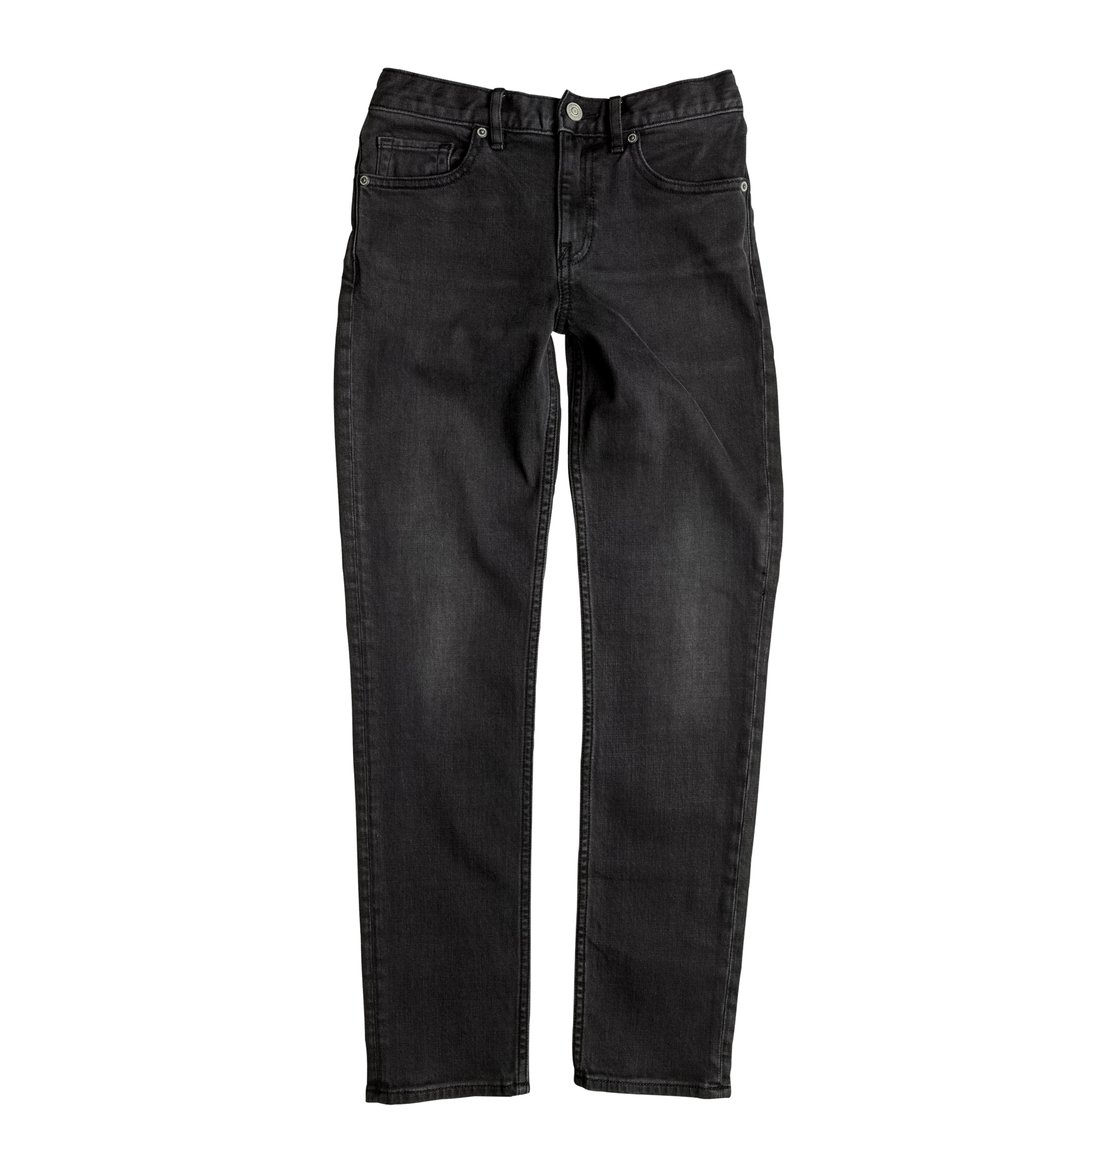 Men's denim with intelligent fit, great looks, life-ready quality and super-comfortable feel: that's what we're about. This modern men's jean has sound style and endless wearing potential in an offhand vintage grey. The look is made complete with our trademark smart design and close attention to fit, not to mention inspired denim fabric, made with a little give.